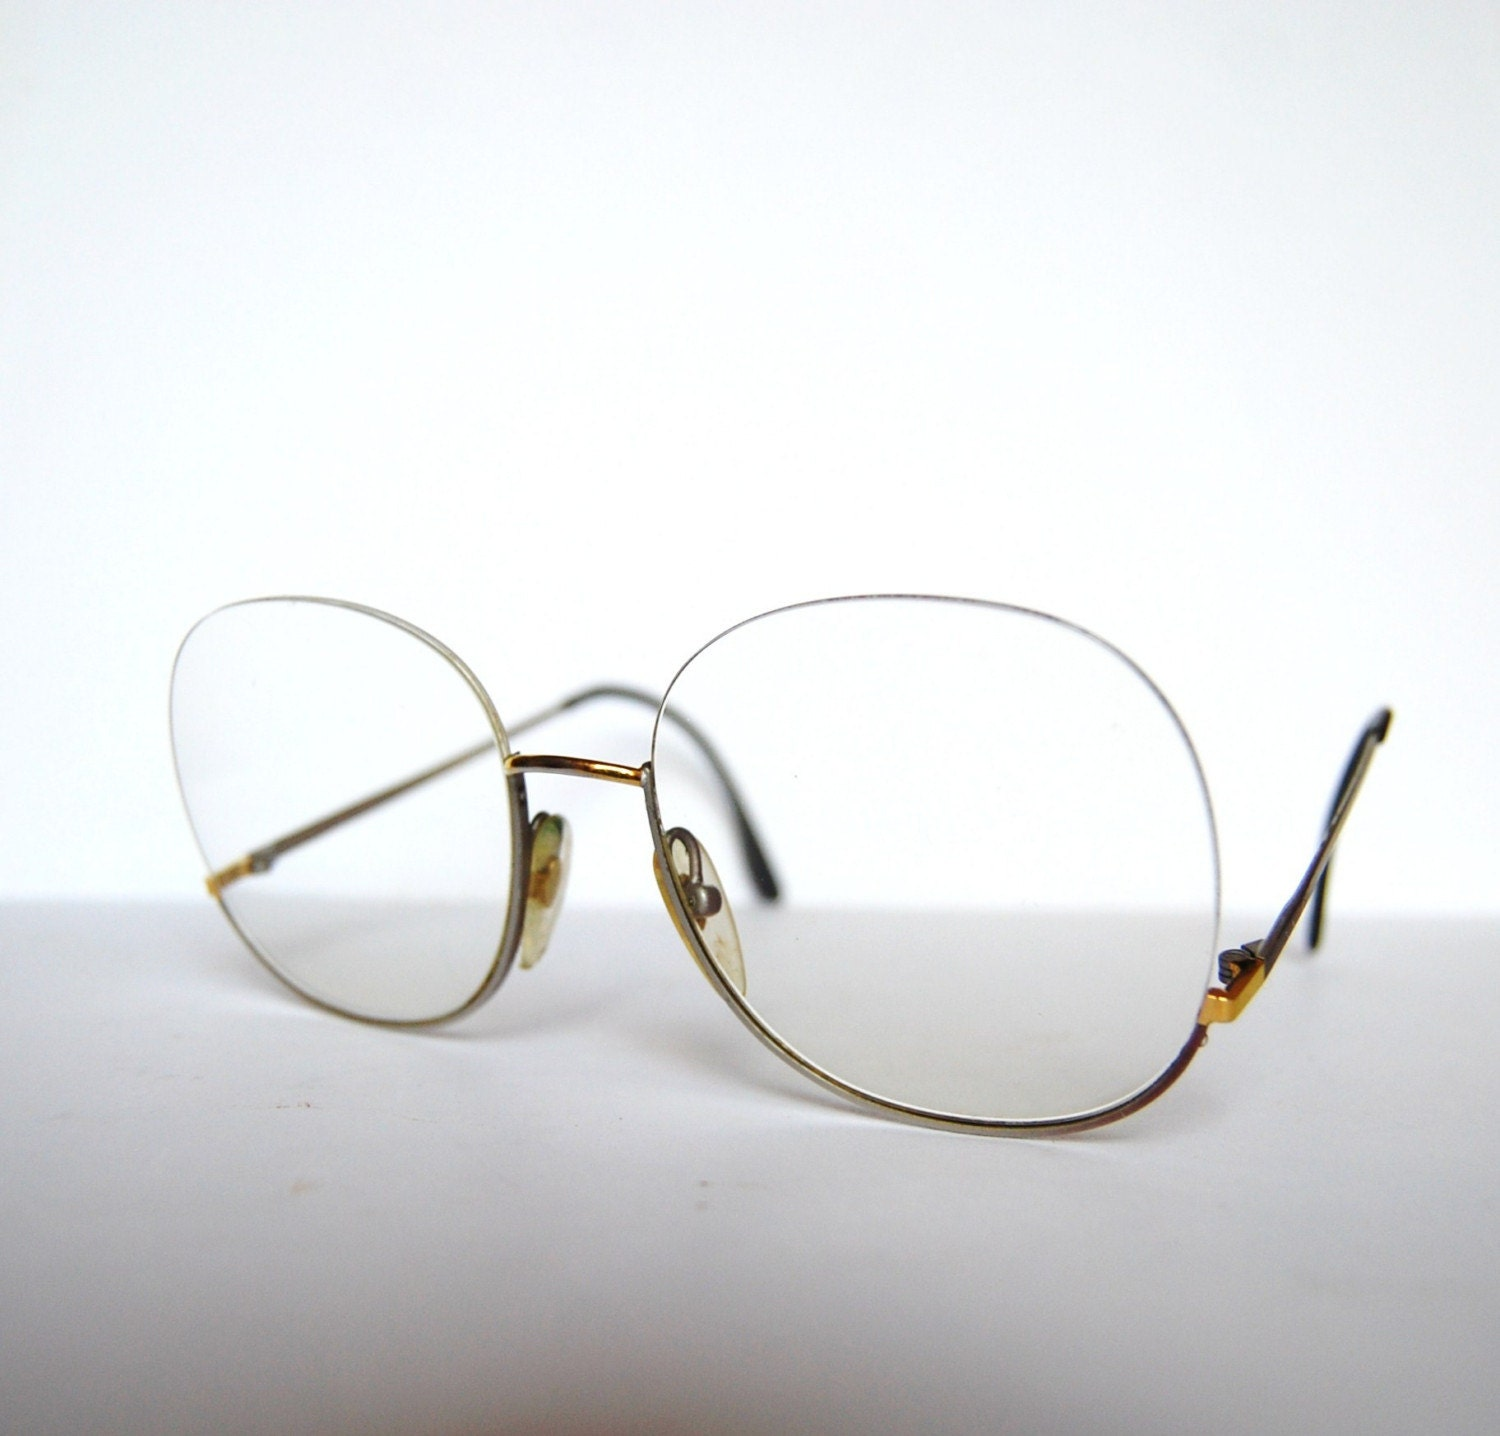 Vintage oversized eyeglasses/sunglasses from by RetroEyewear from etsy.com